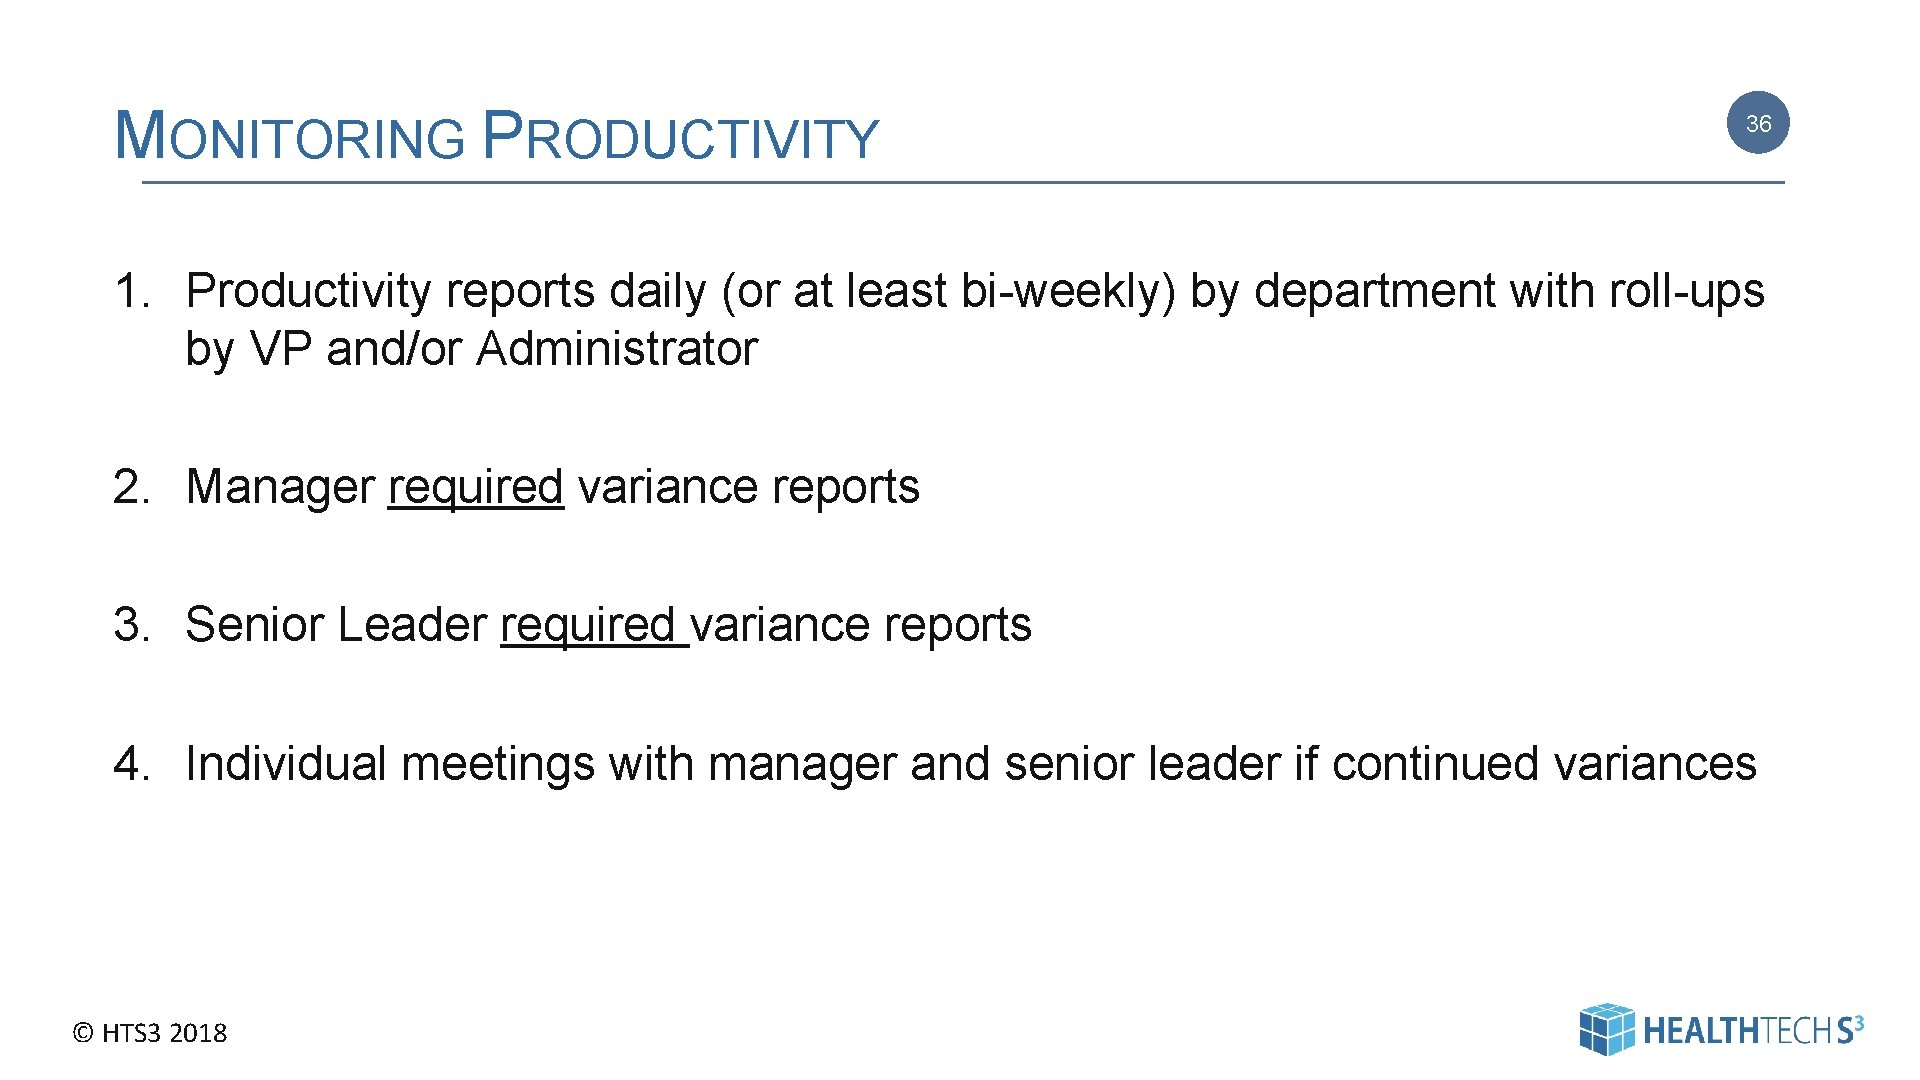 MONITORING PRODUCTIVITY 36 1. Productivity reports daily (or at least bi-weekly) by department with